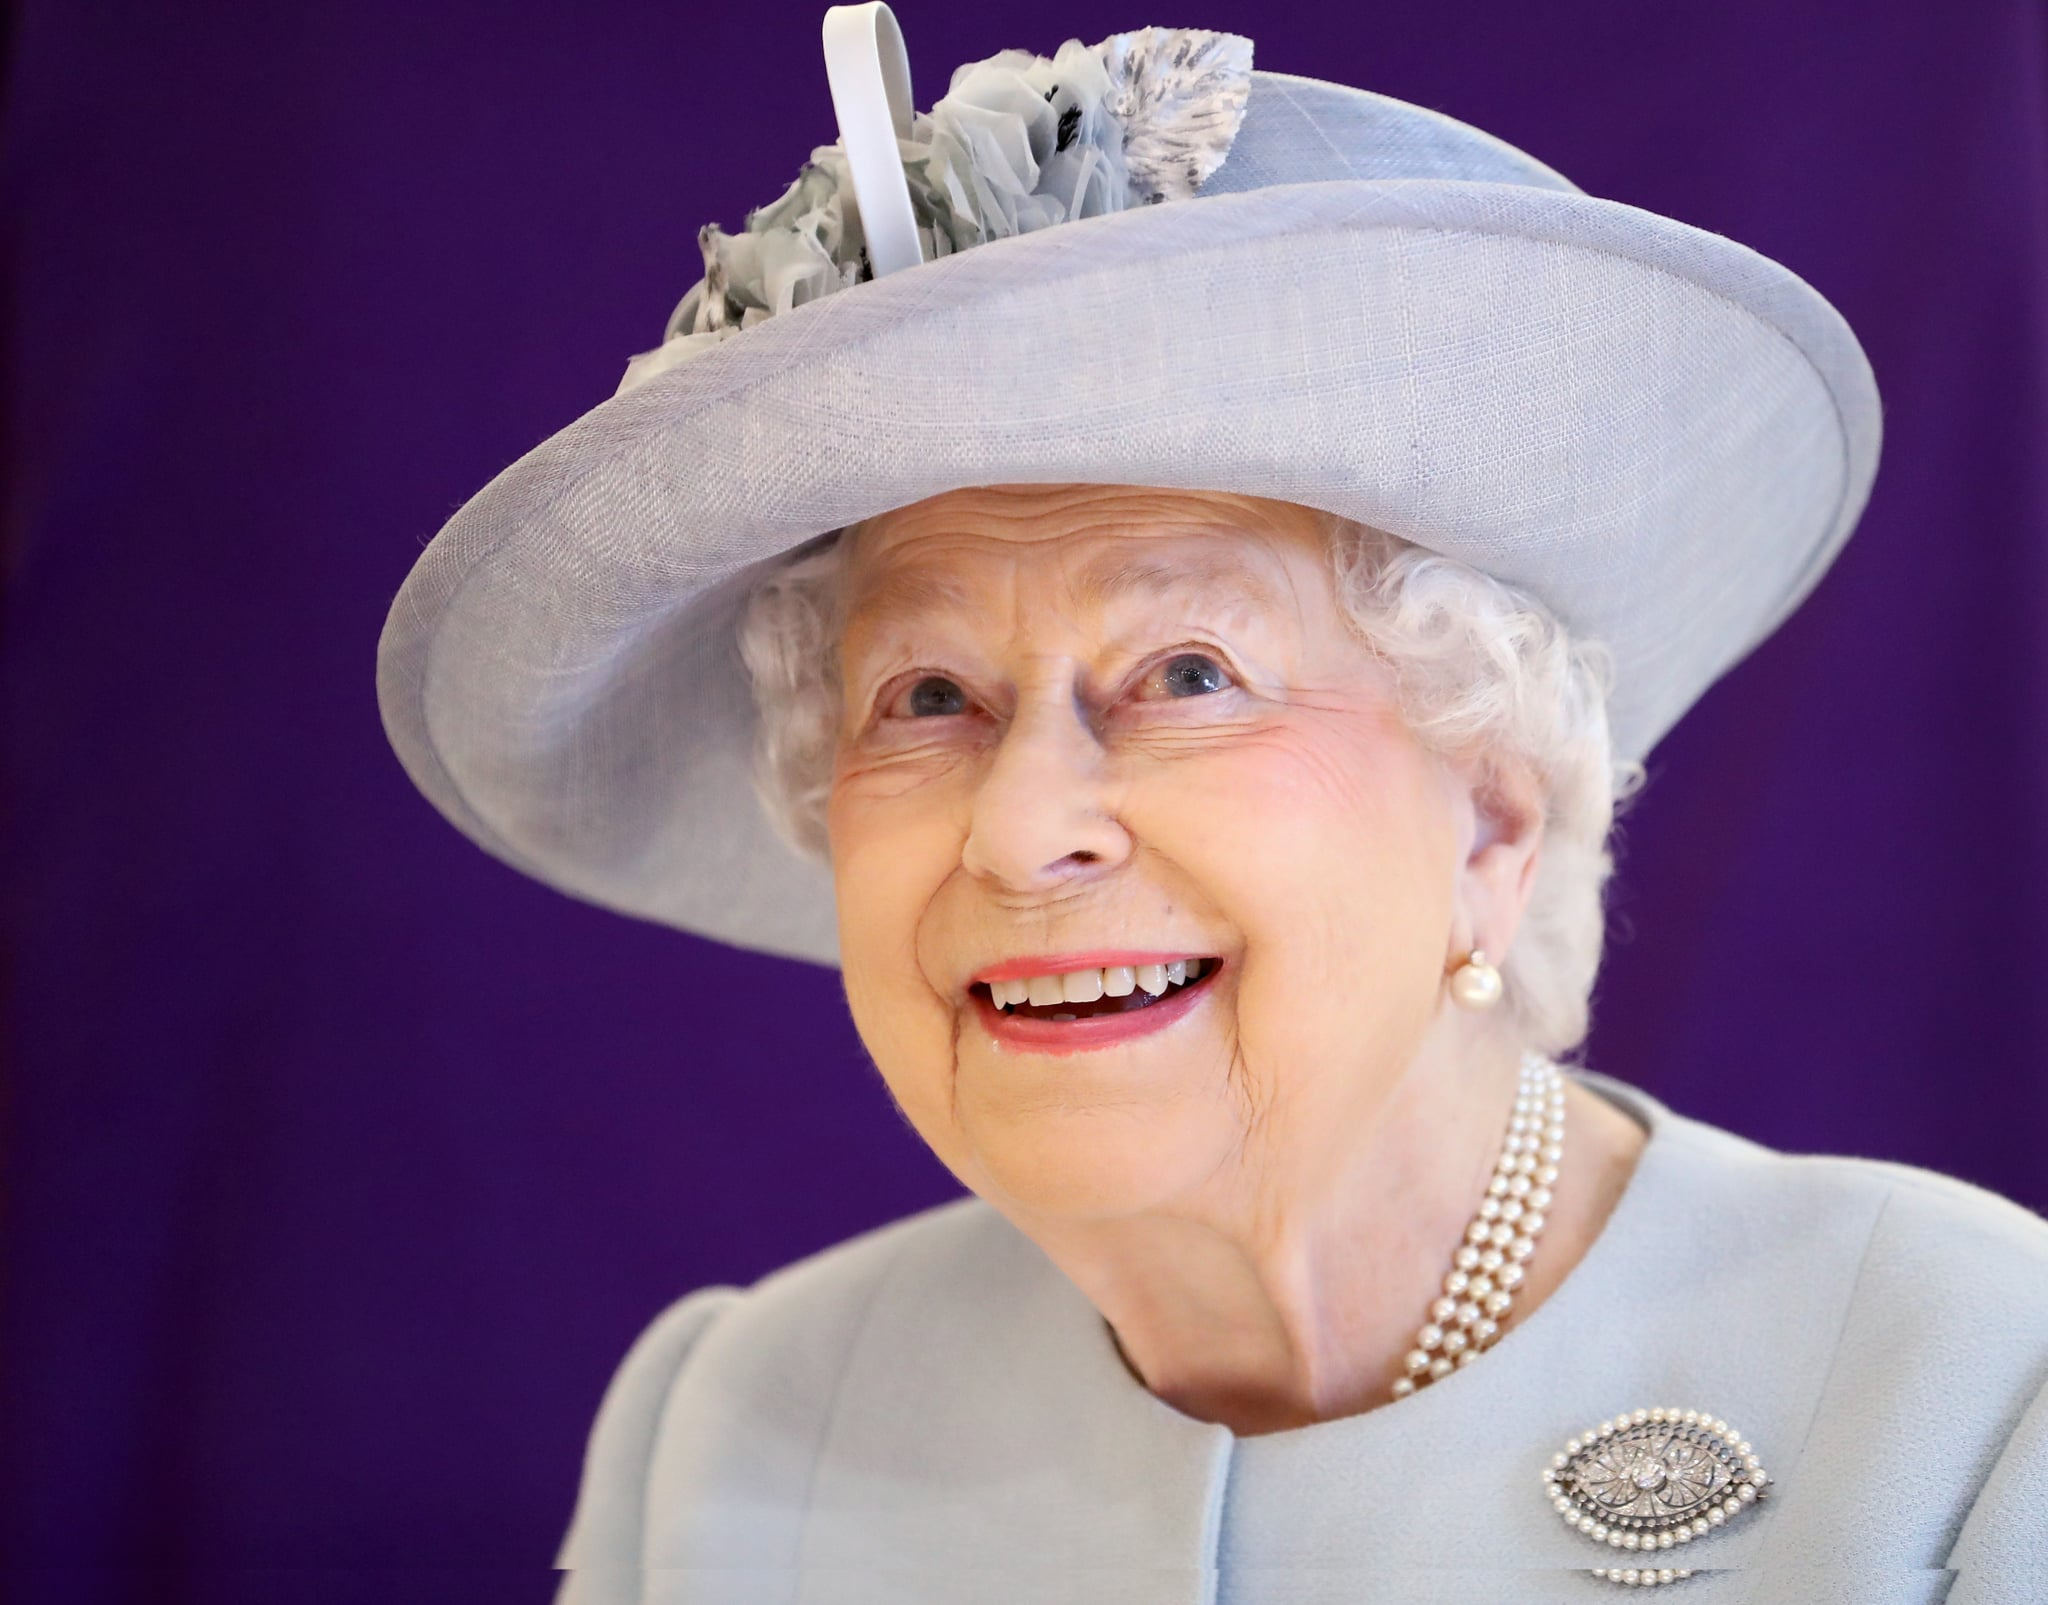 LONDON, ENGLAND - FEBRUARY 20:  Queen Elizabeth II visits the Royal College Of Physicians on February 20, 2018 in London, England.  (Photo by Chris Jackson - WPA Pool/Getty Images)